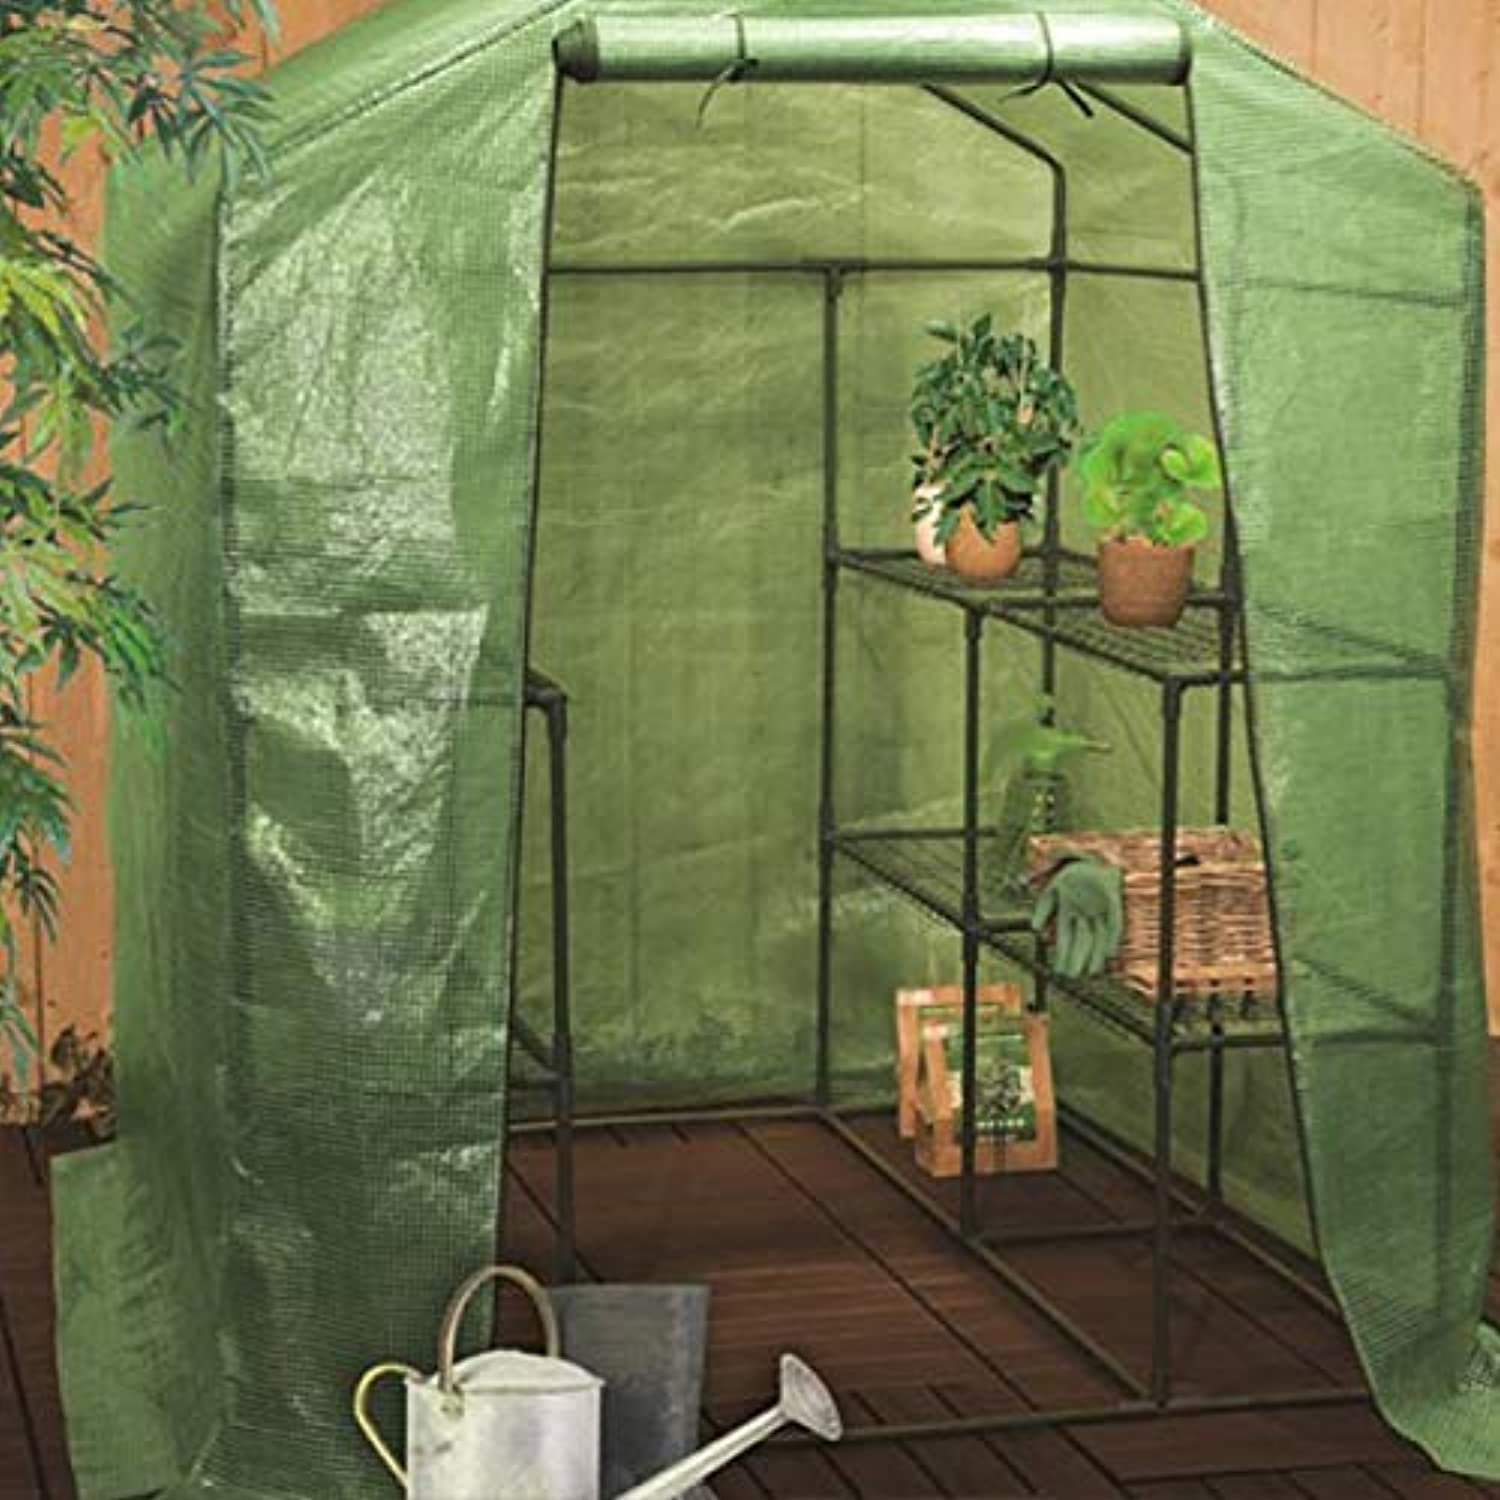 Eurowebb Large Greenhouse with 4 Shelves  Metal Shelves  Easy to Assemble and Store